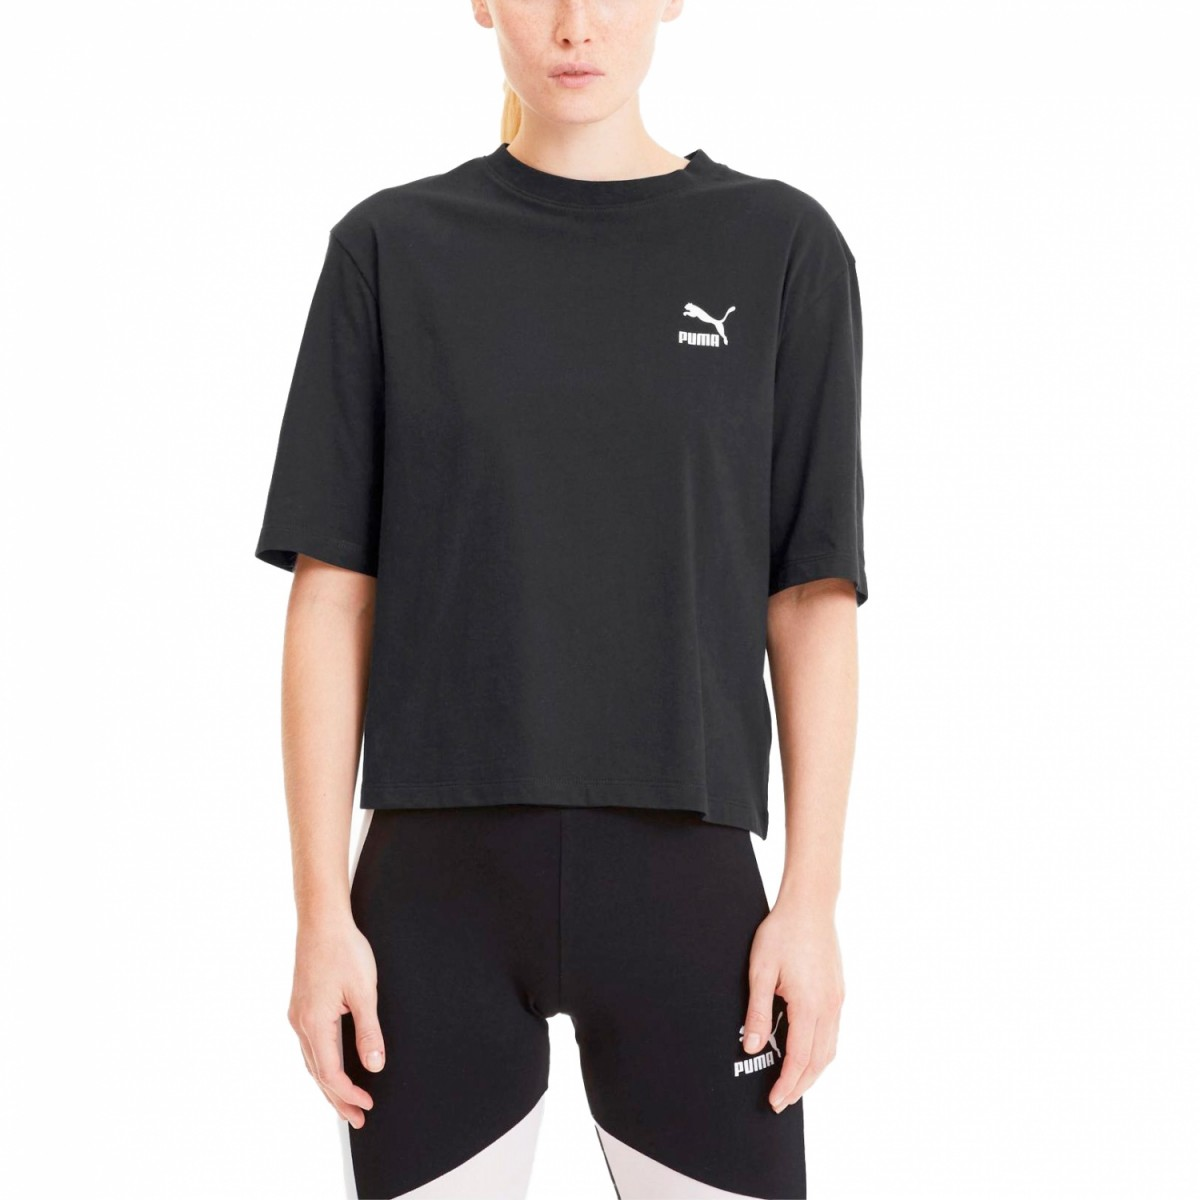 Puma Tailored for Sport Graphic Tee